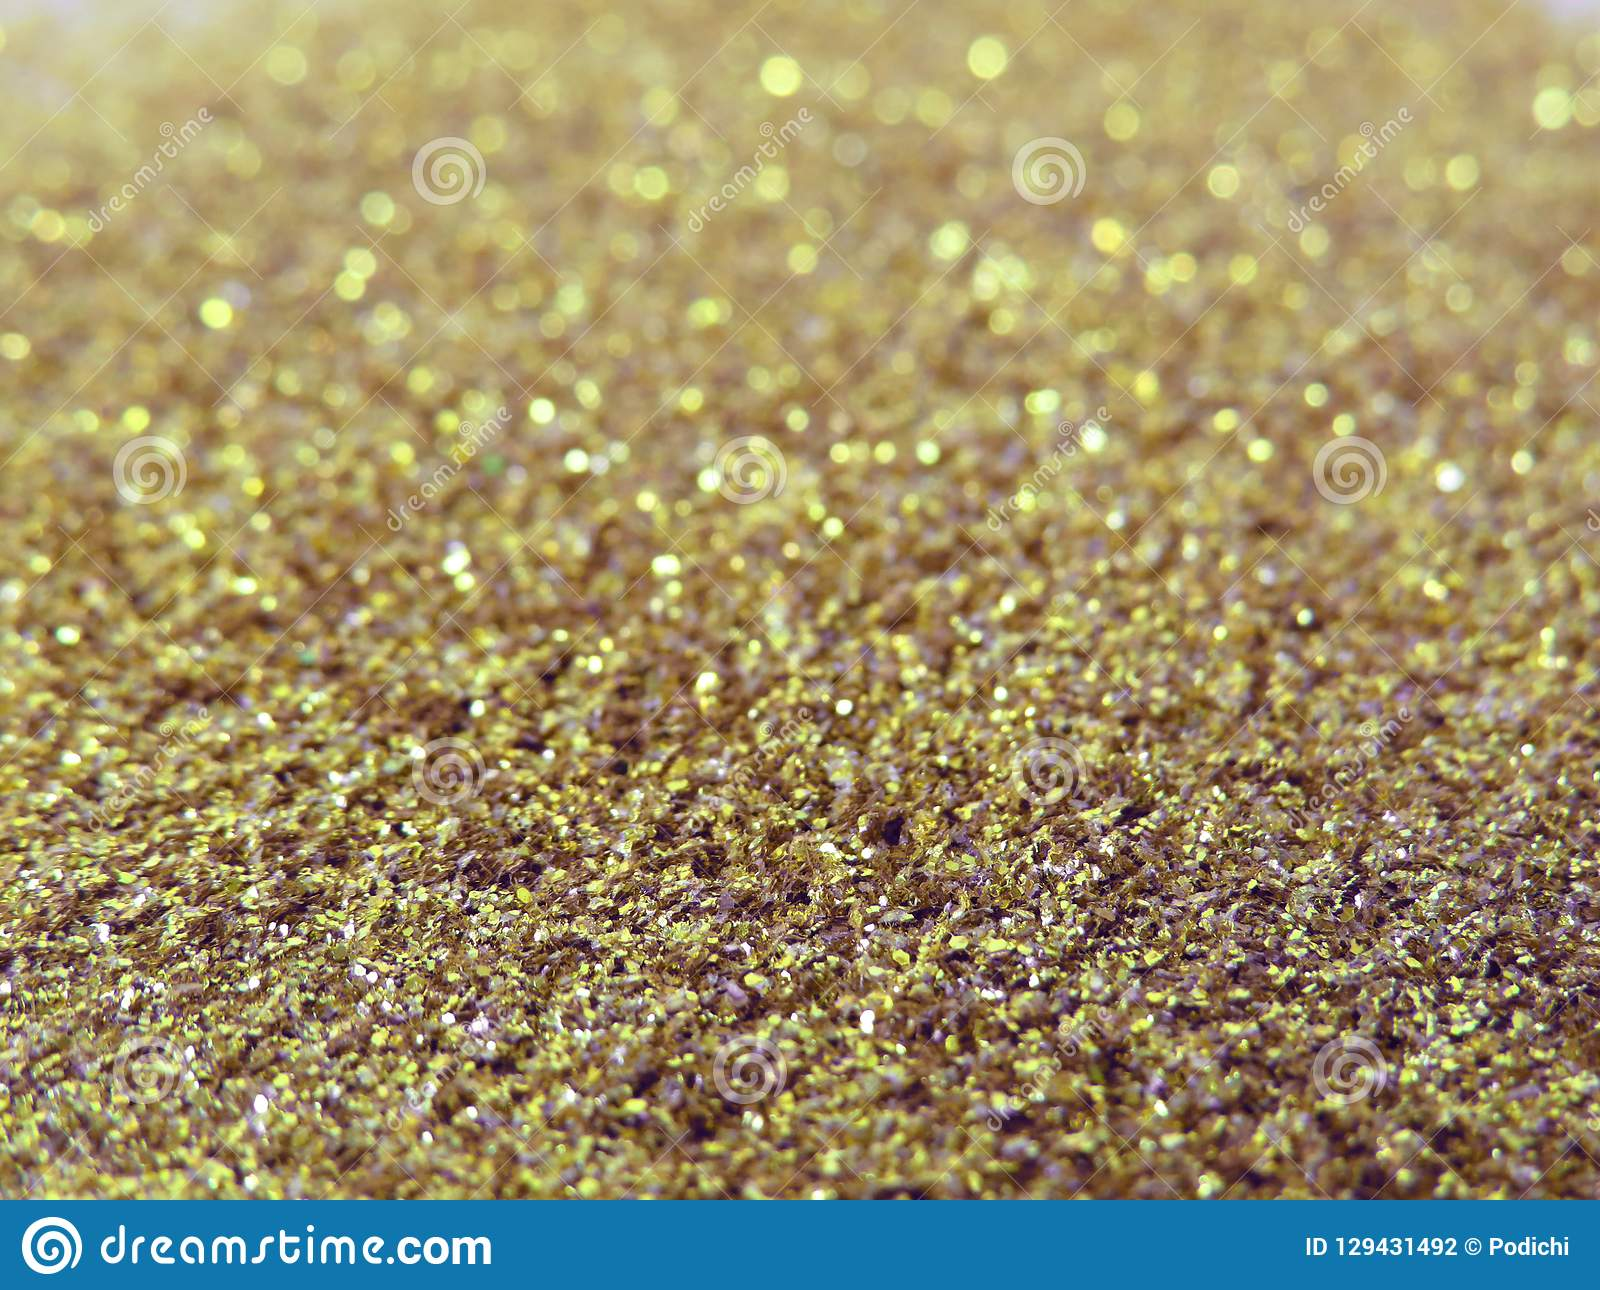 Glitter gold dust and sand background for christmas greeting cards